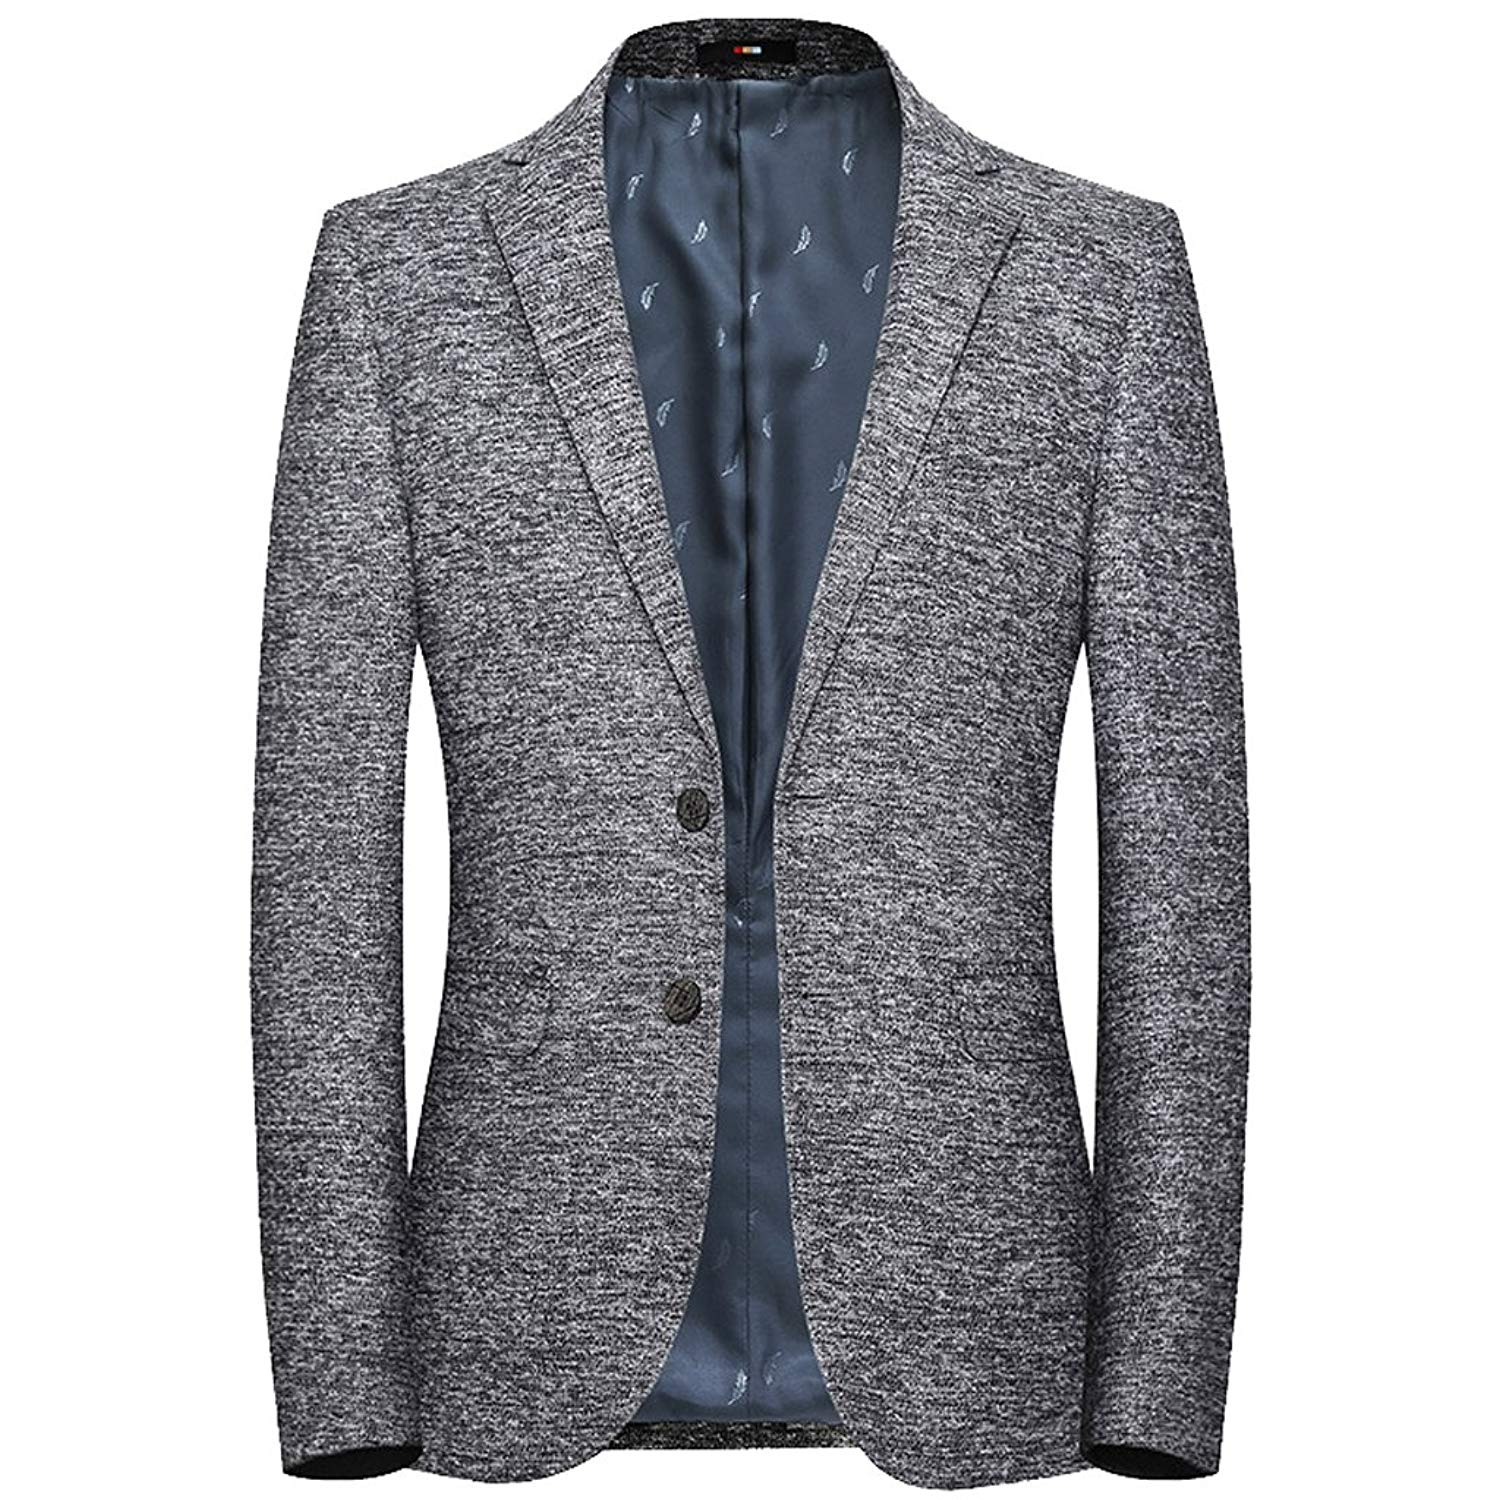 WSPLYSPJY Mens Blazer Slim Fit Casual One Button Solid Coat Separate Jacket